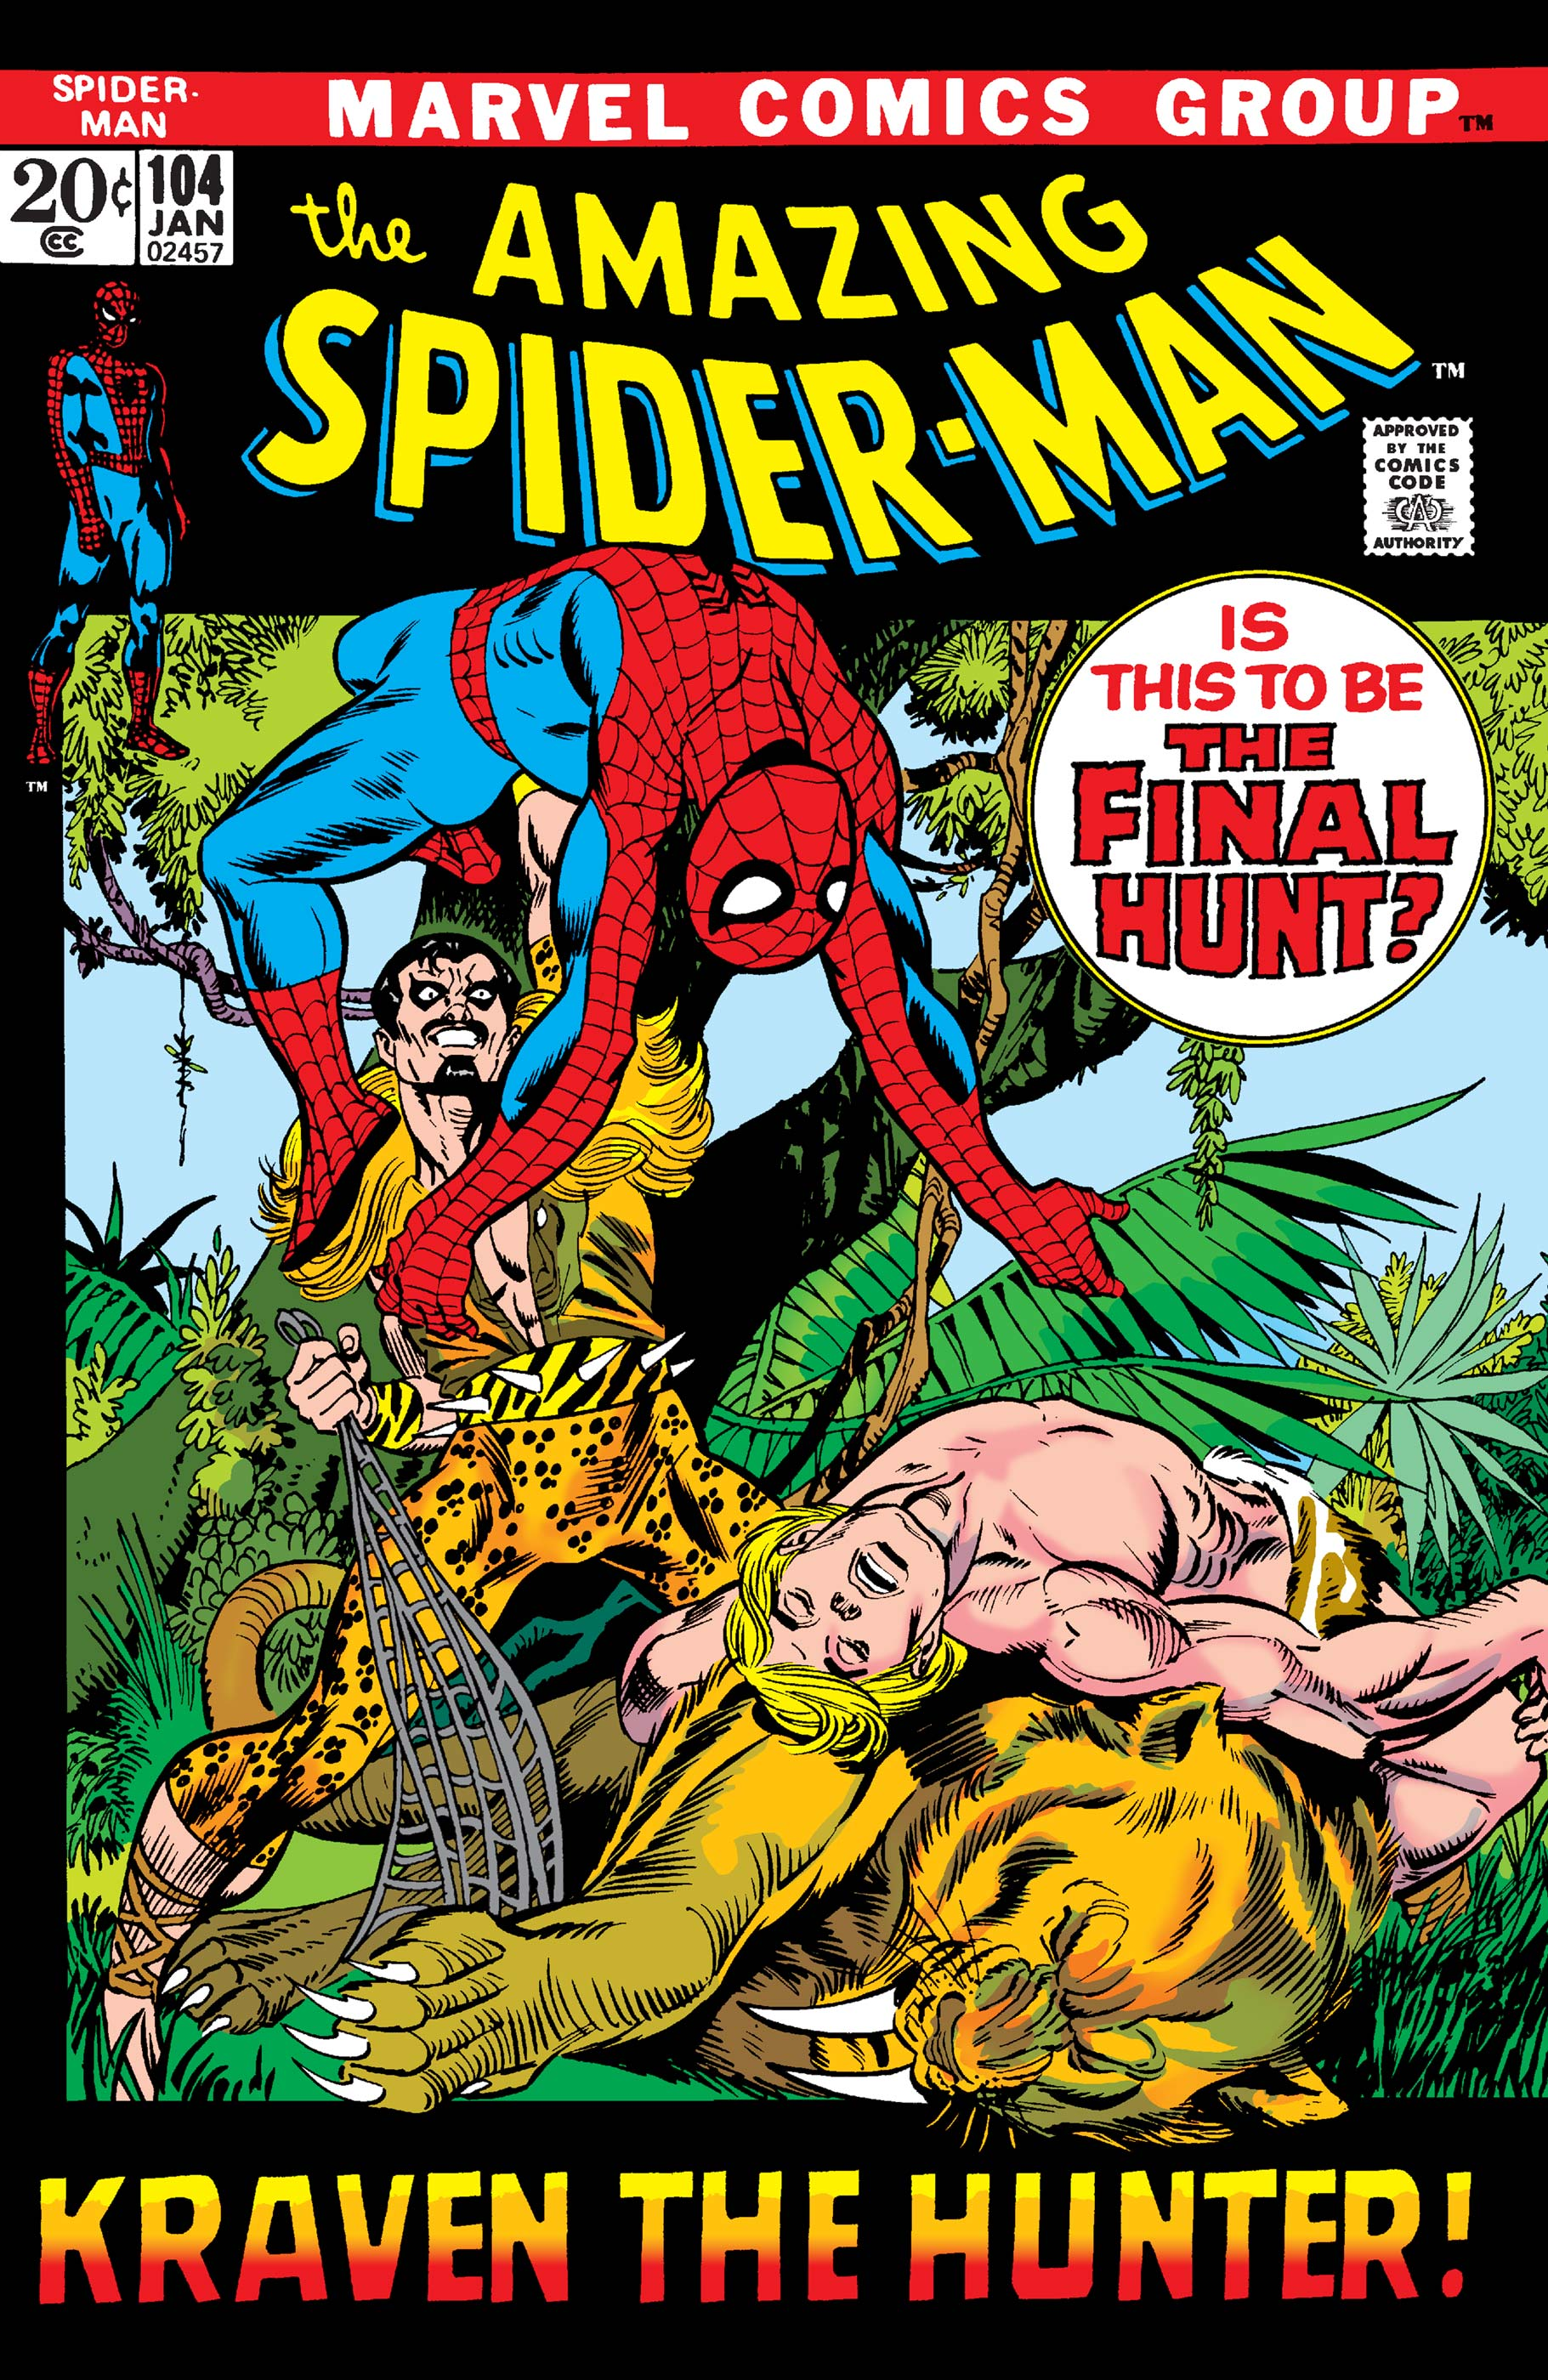 The Amazing Spider-Man (1963) #104